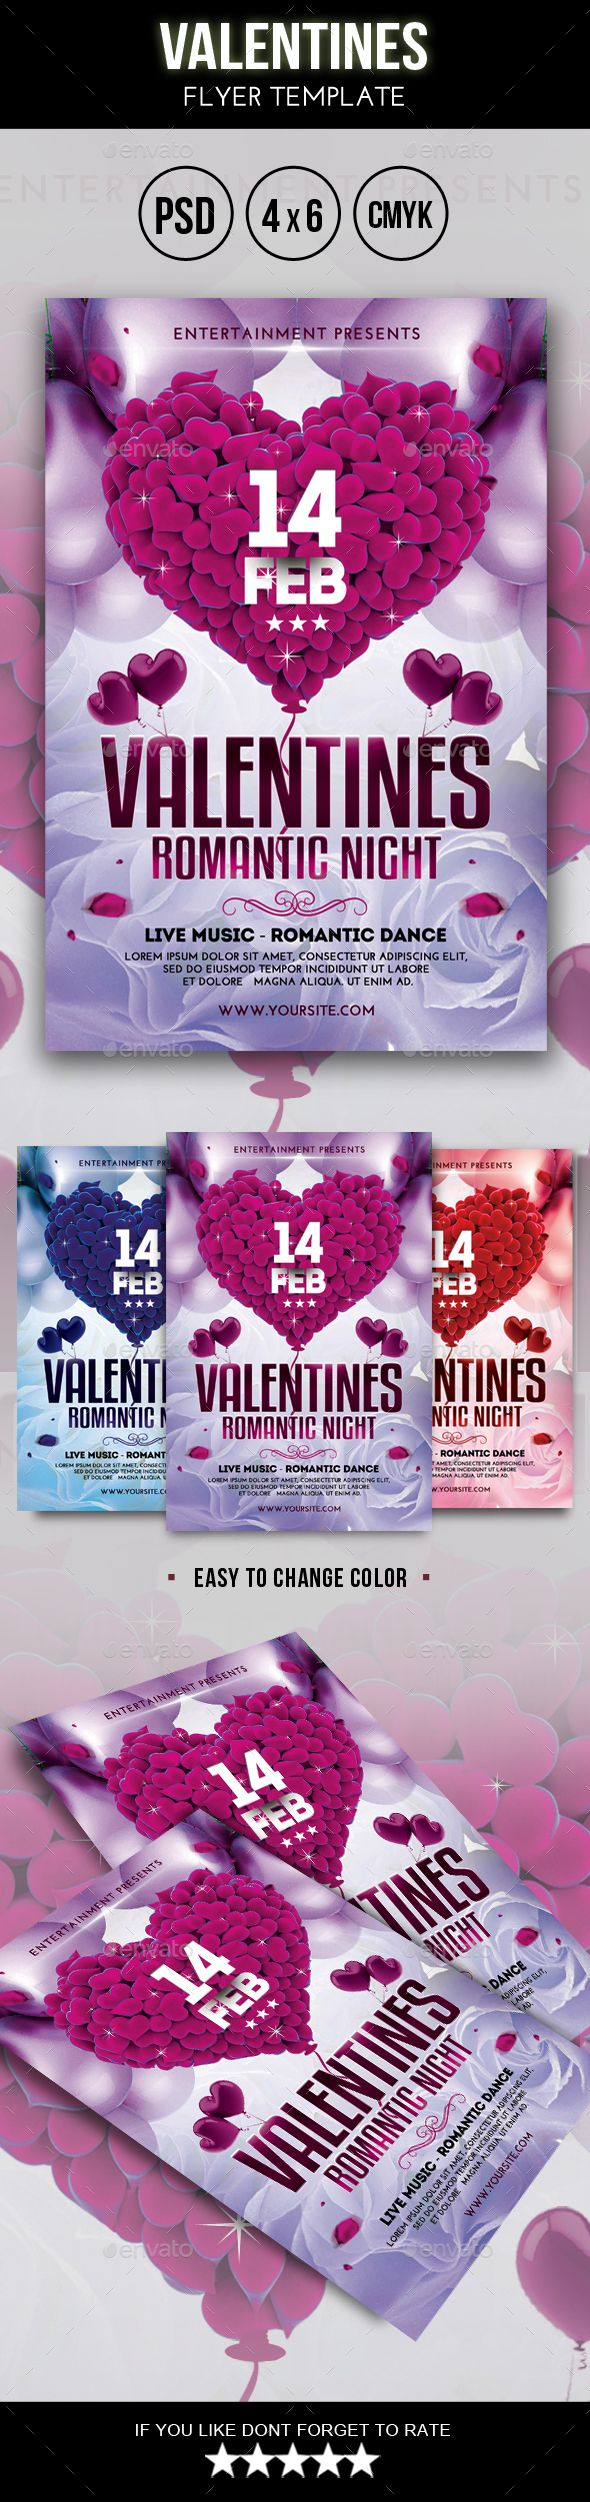 16 best Valentine\'s Day Posters, Flyers, Cards & More! images on ...